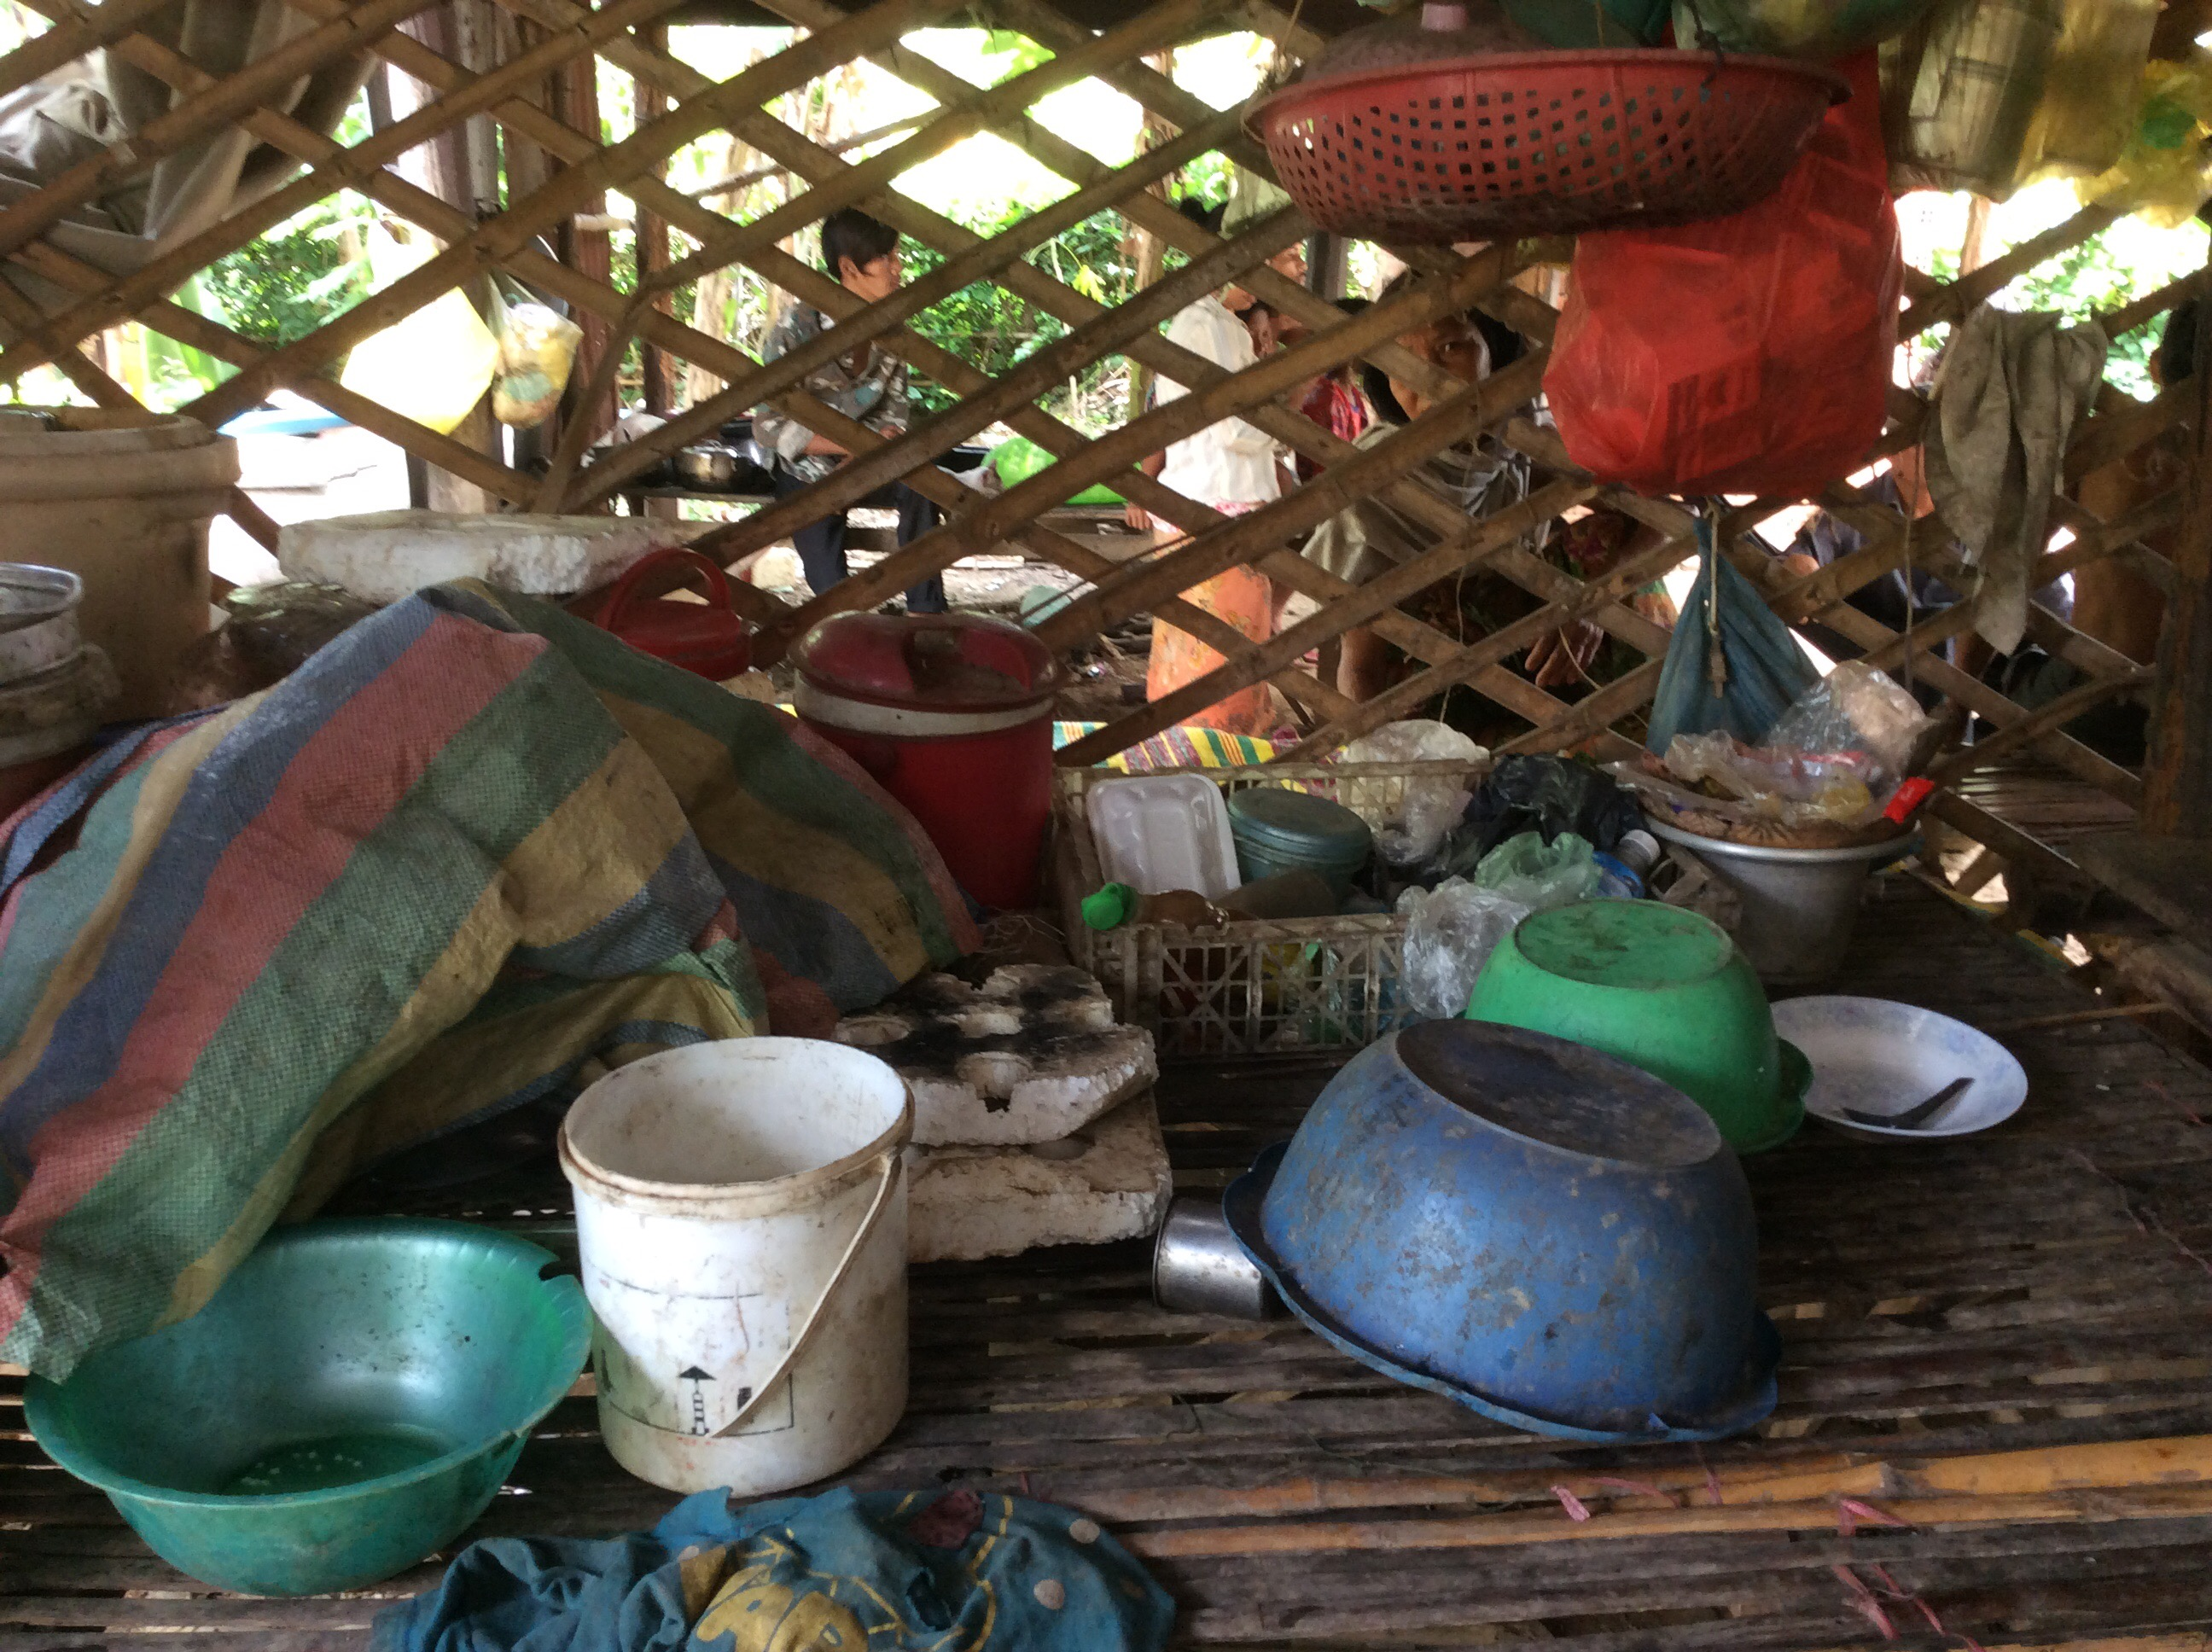 Buo Phans kitchen elderly cambodia living circumstances